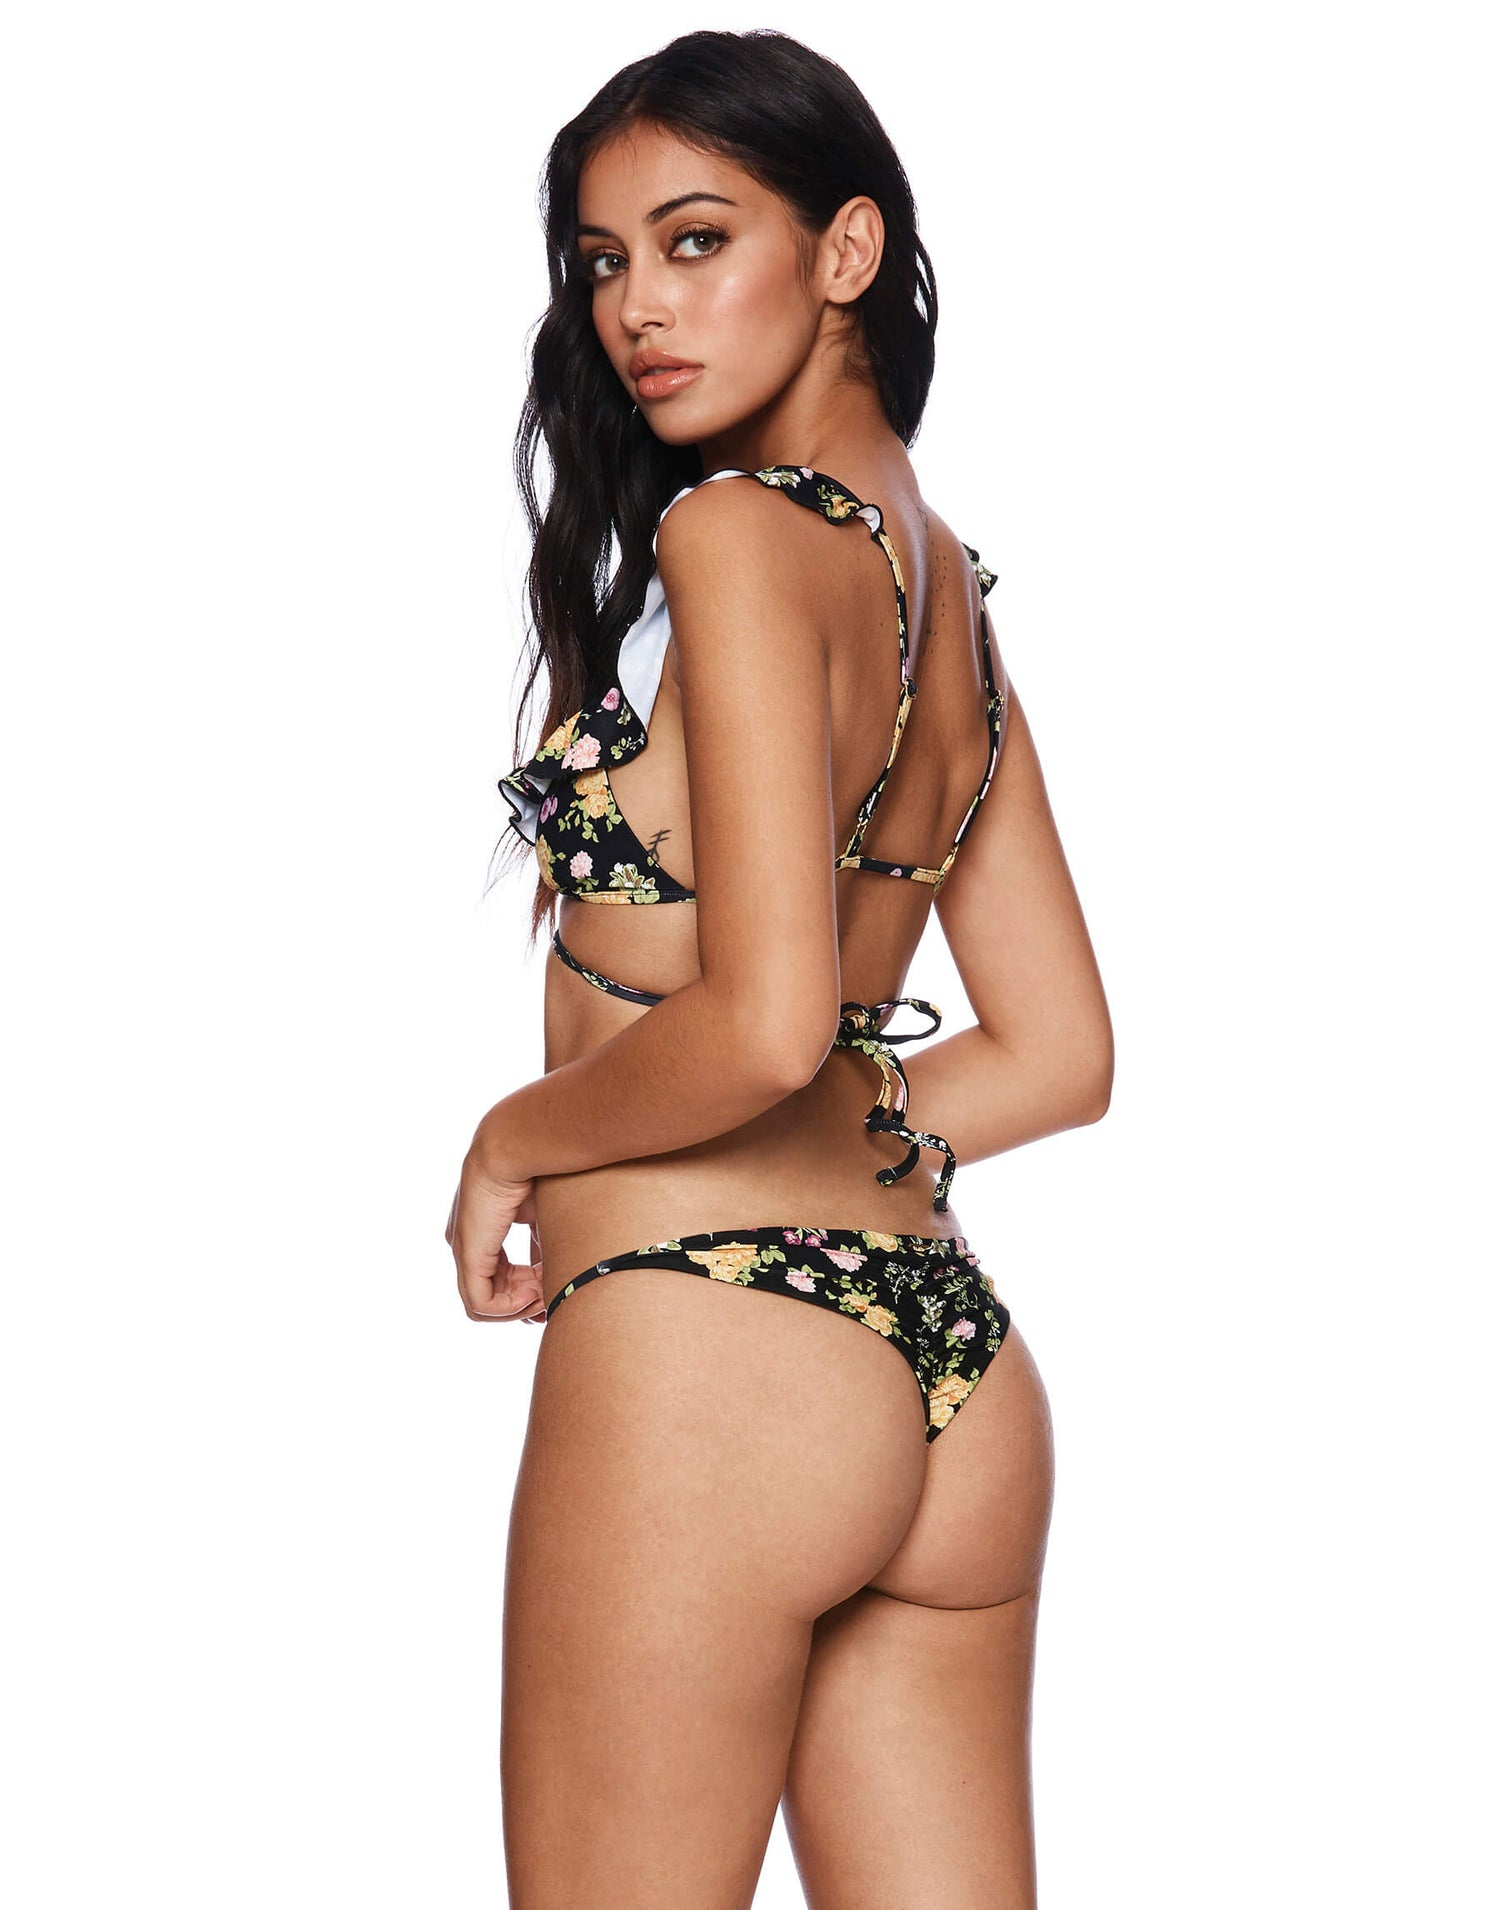 Scarlette Wrap Bikini Top with Ruffle Detail in Black Floral - back view